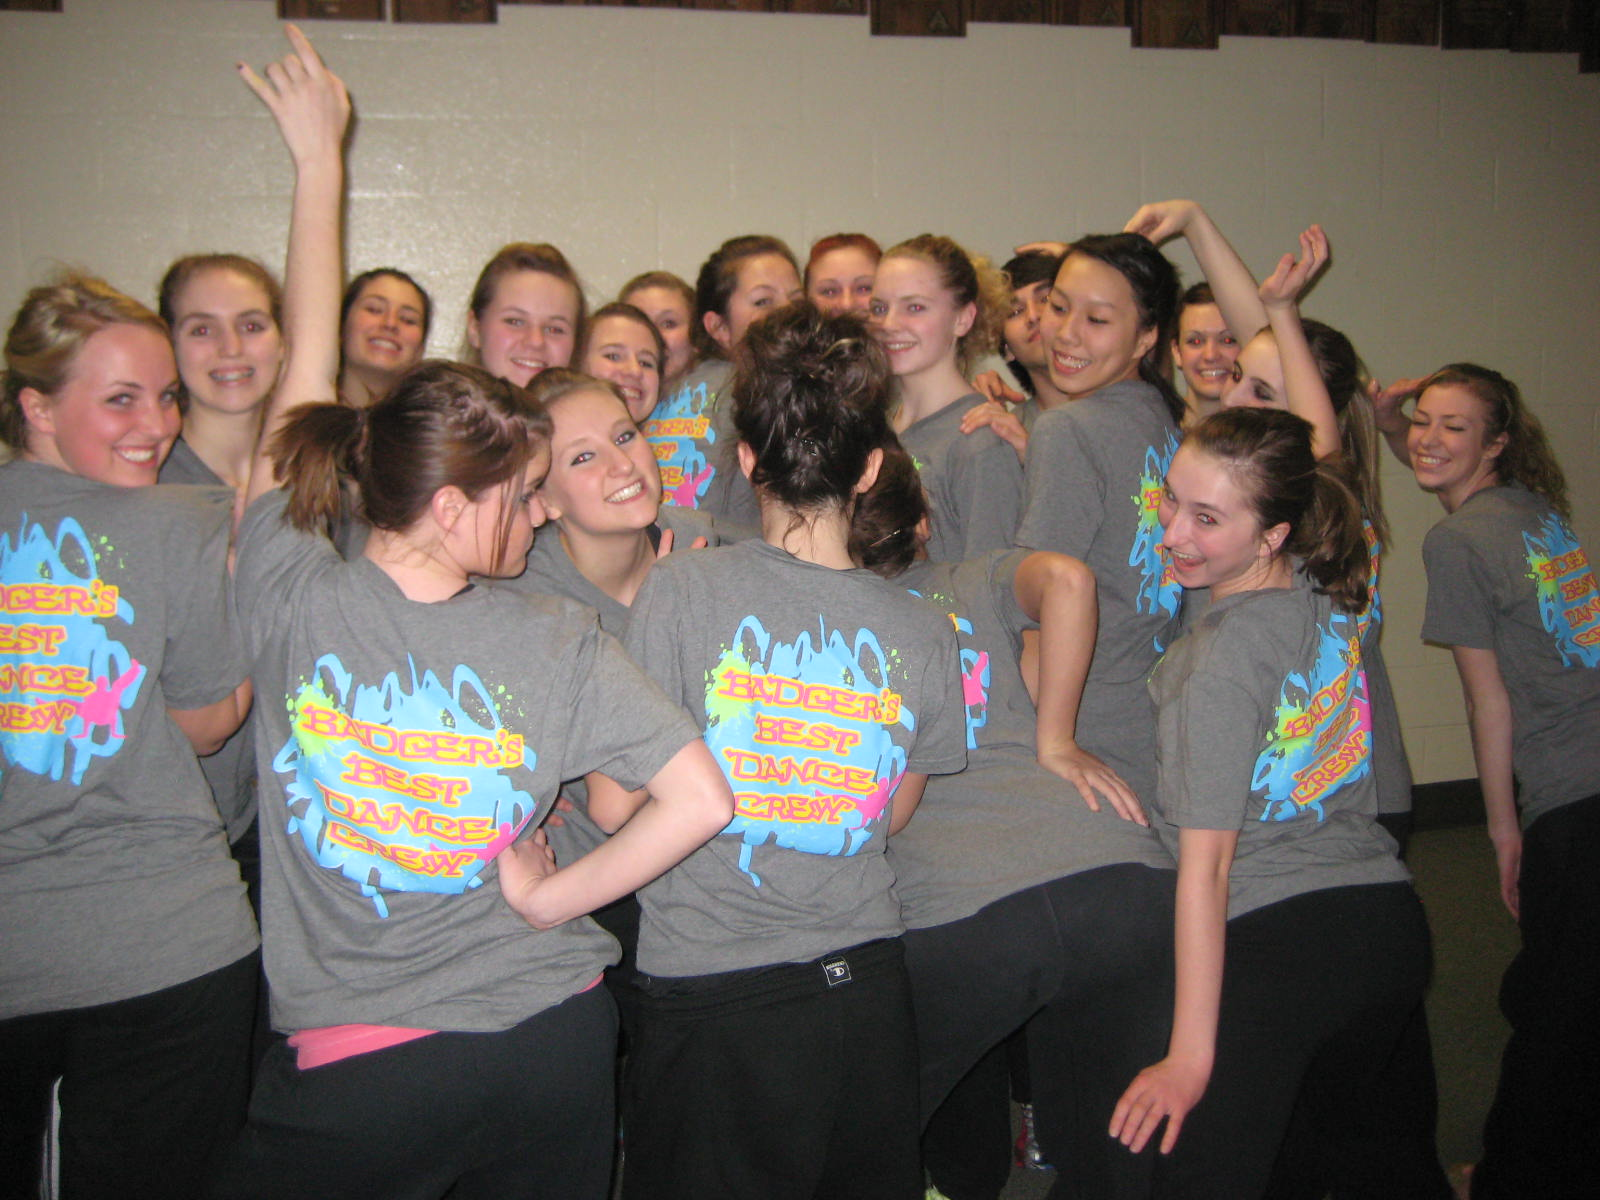 Custom t shirts for badger 39 s best dance crew shirt for College dance team shirts